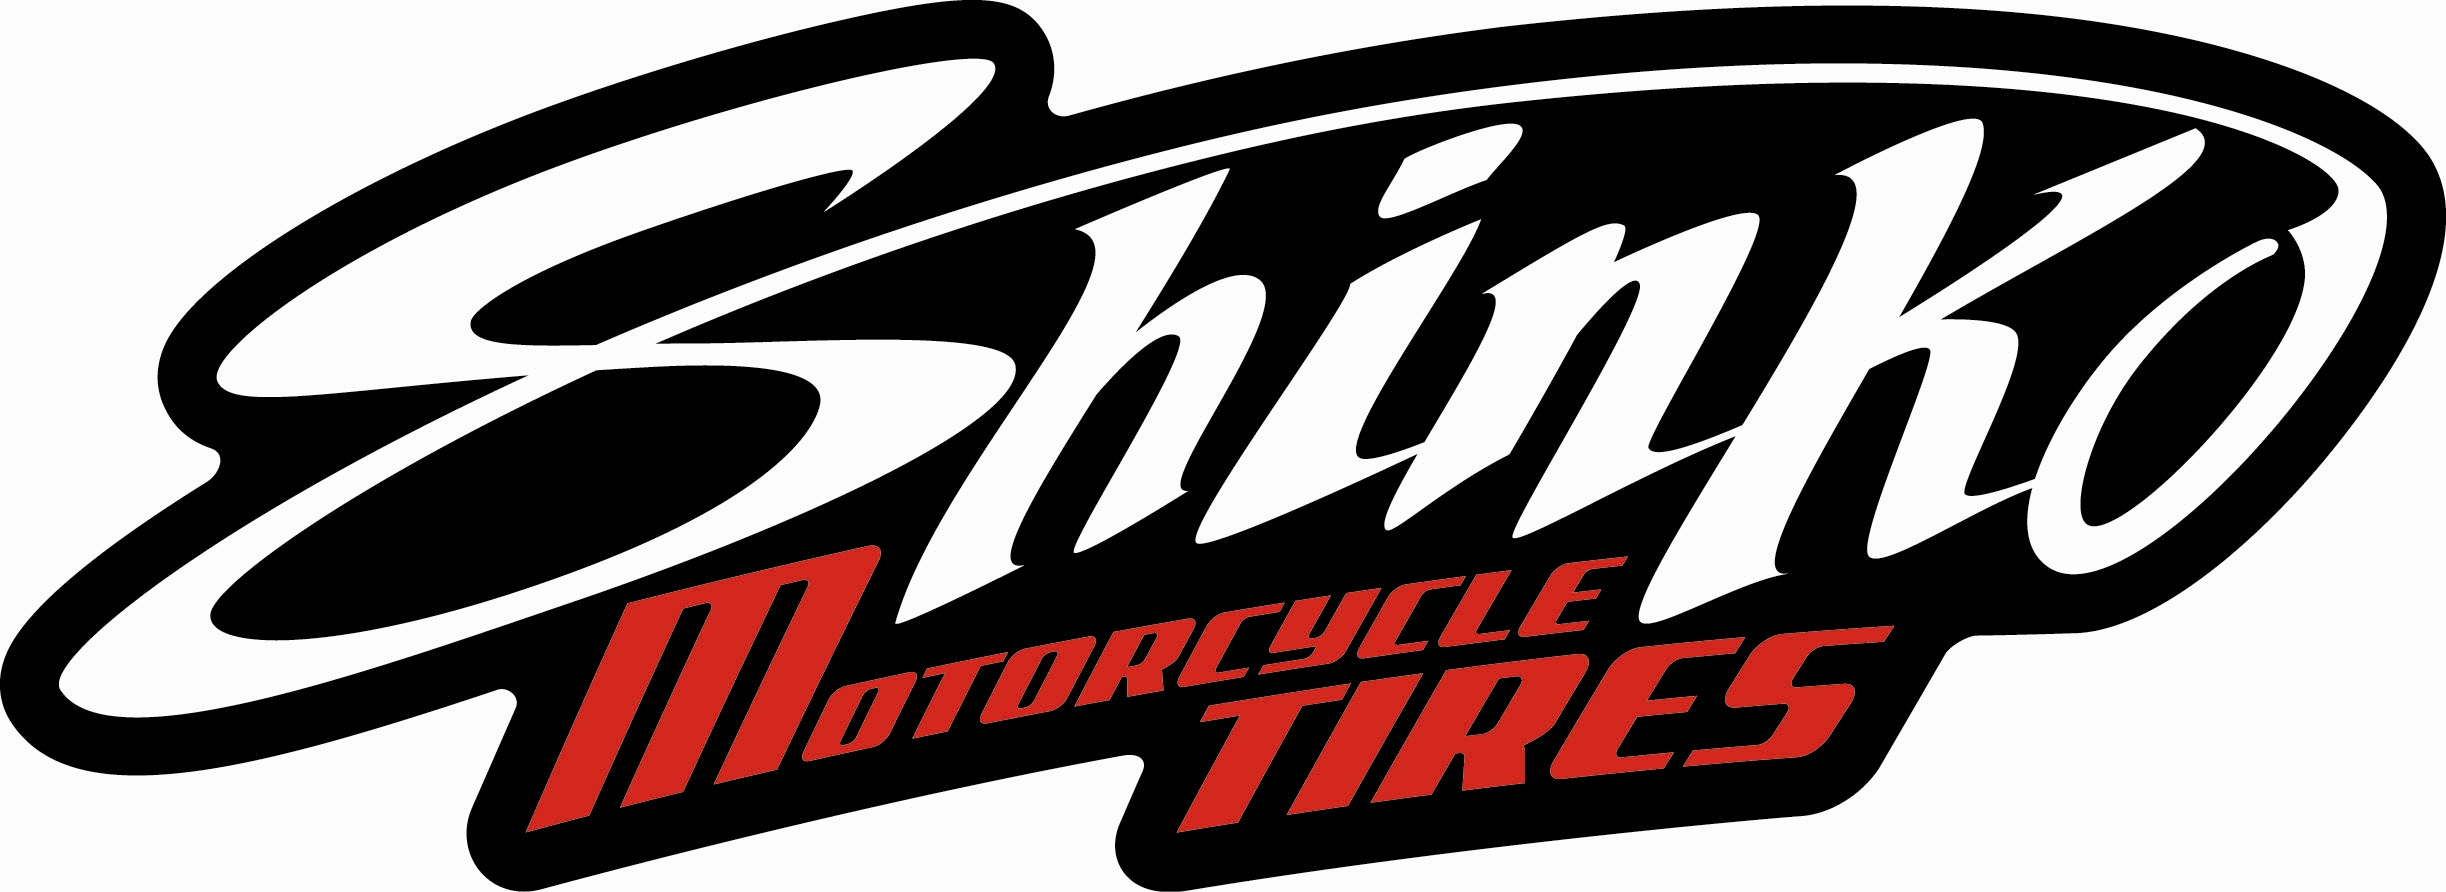 Shinko tires clipart png free stock Shinko Tires Posts $1,200 in the MIROCK Contingency Program ... png free stock